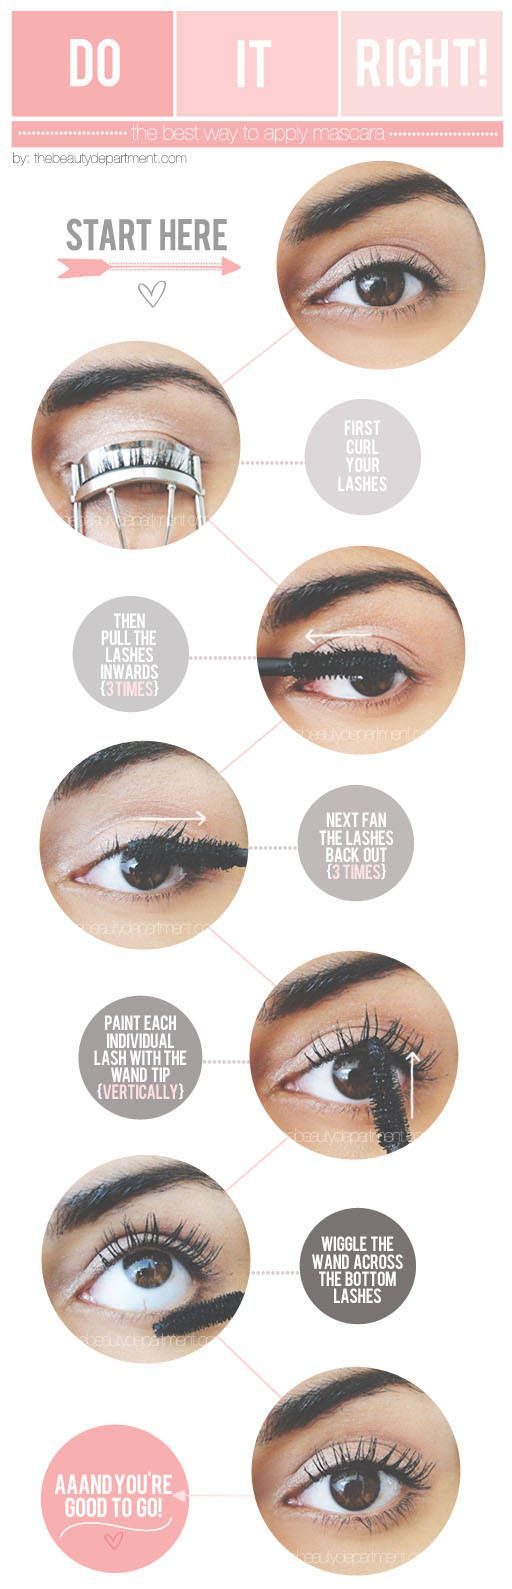 10 Secrets for Lash Curling